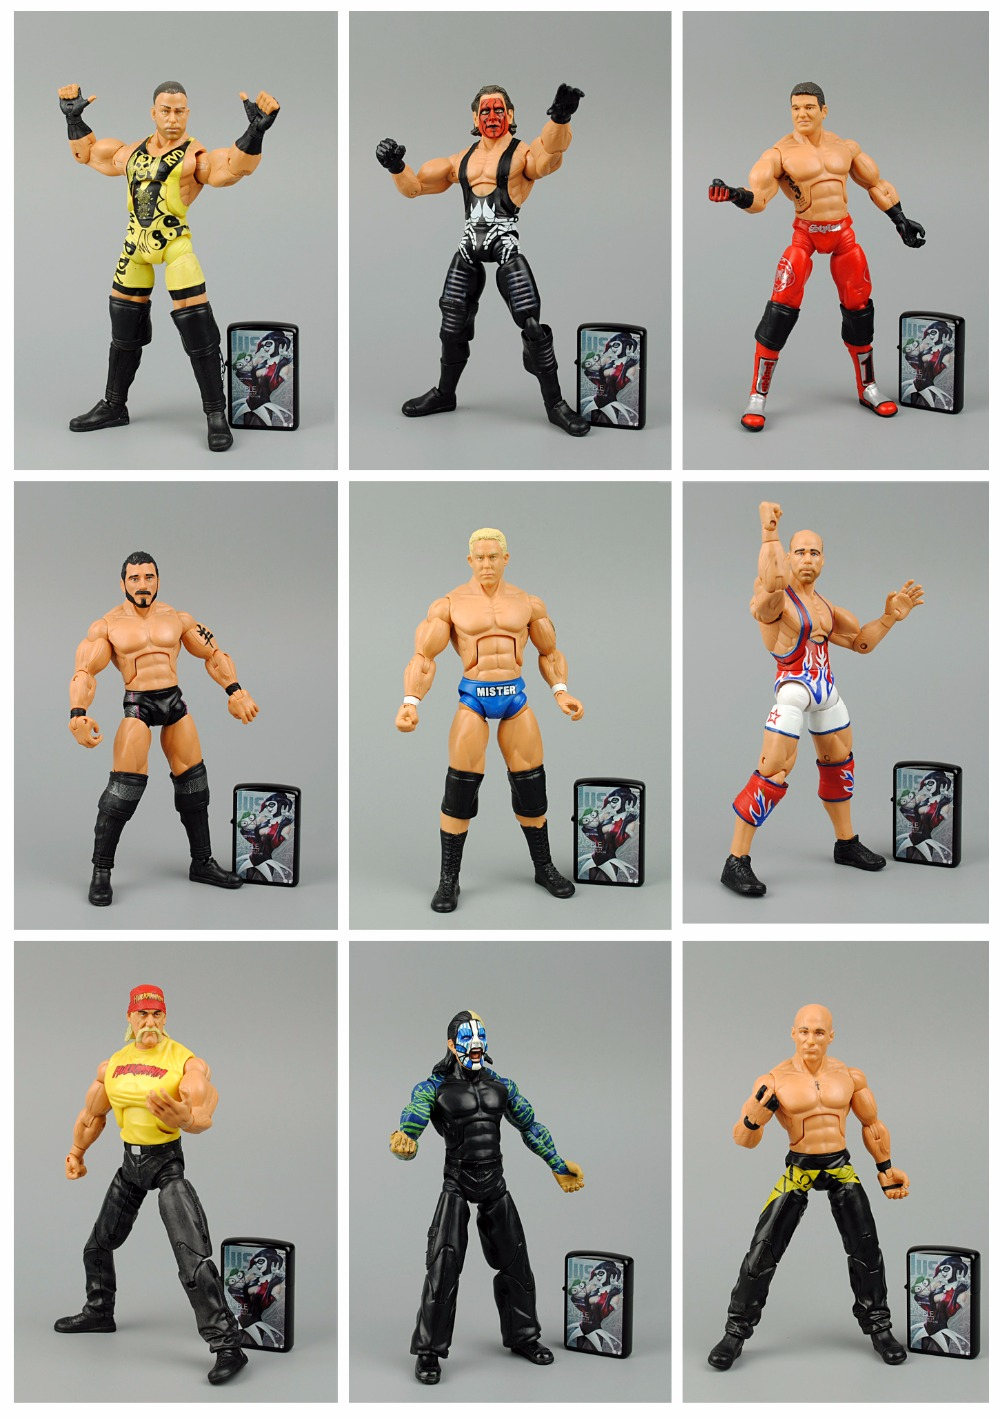 7 inch High Classic Toy Ring combat Christian occupation wrestling wrestler action figure Toys For Children Classic Gift